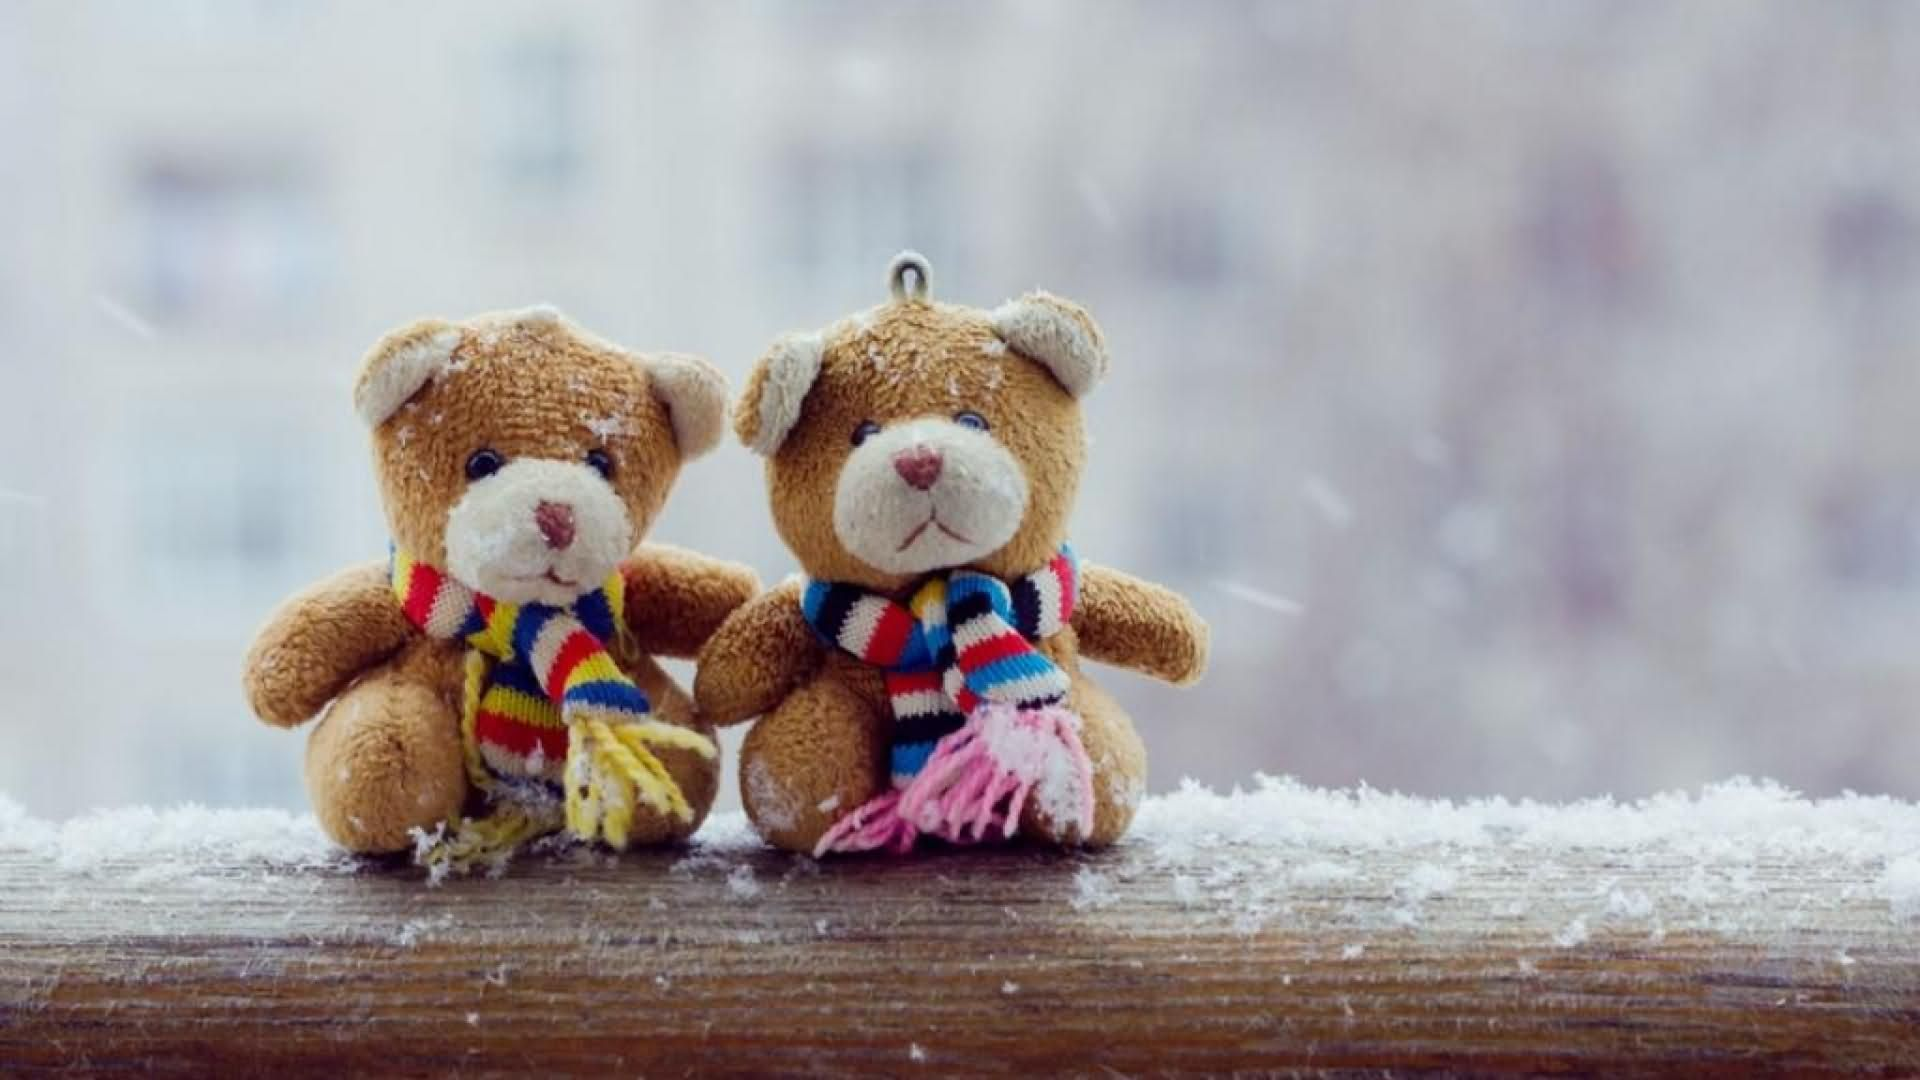 Best Friends Forever Wallpapers Wallpaper Varsha Teddy 1920x1080